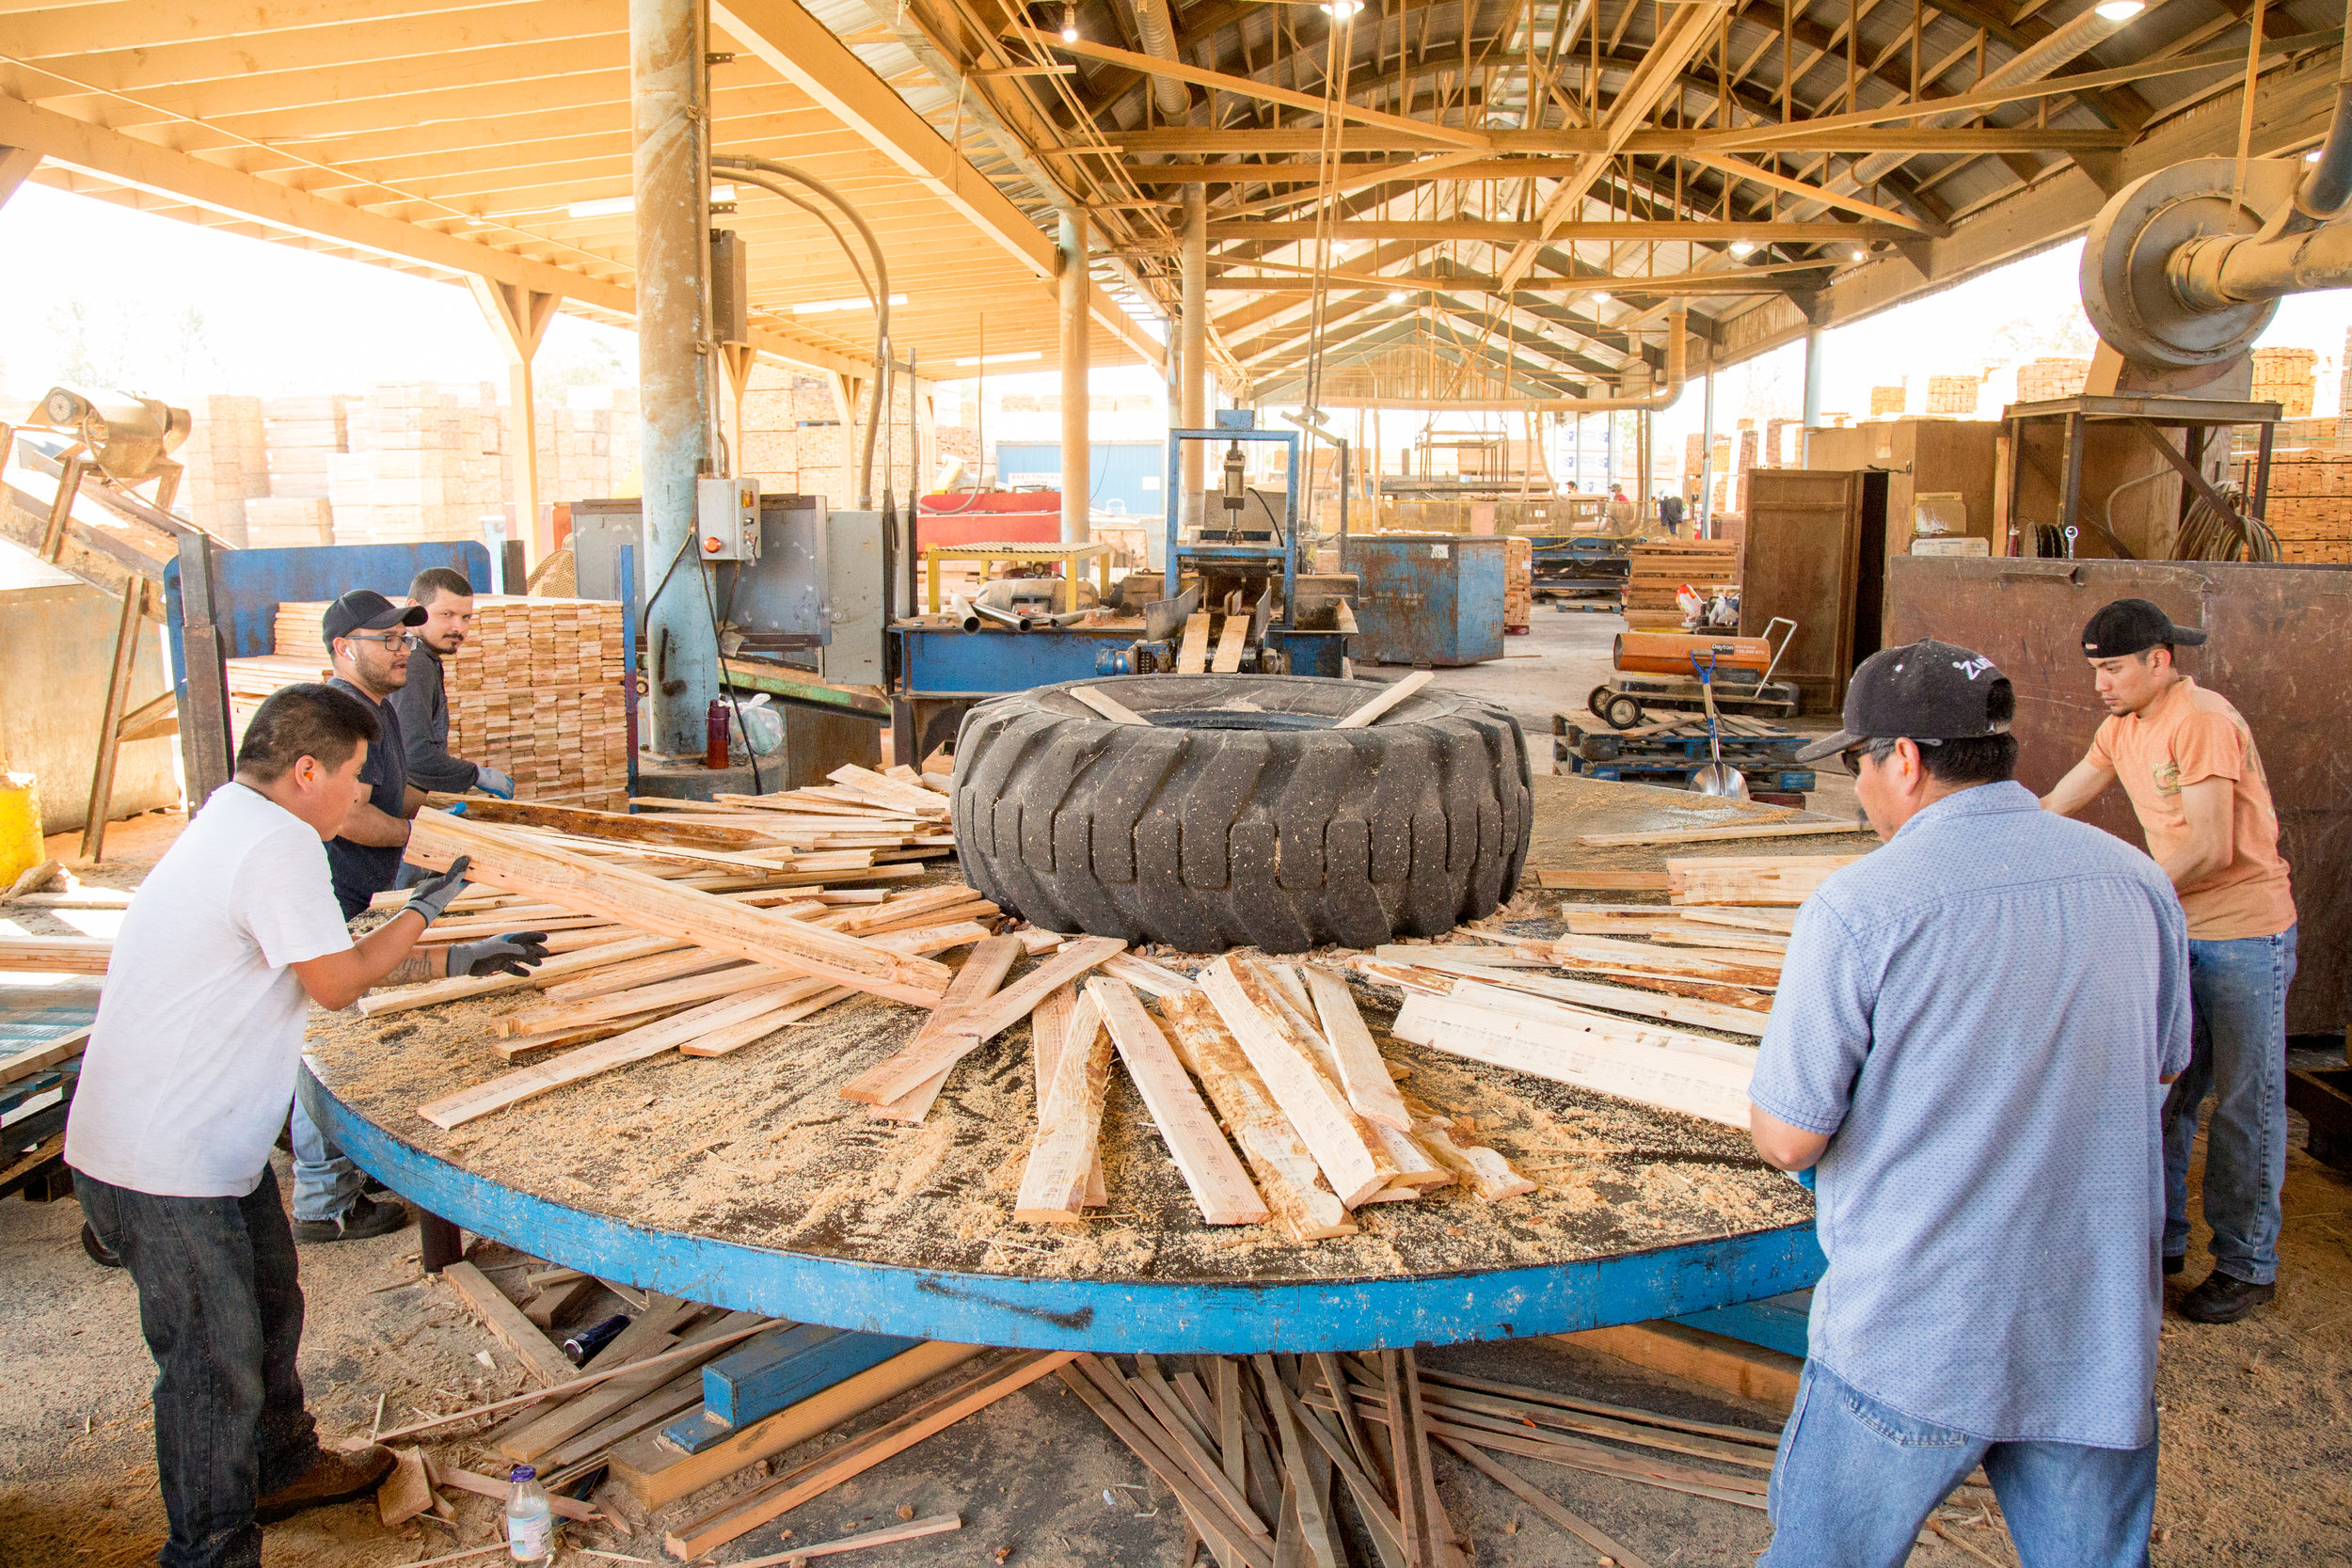 Copy of Turner Lumber Products and Business Photos 2019 (82).jpg